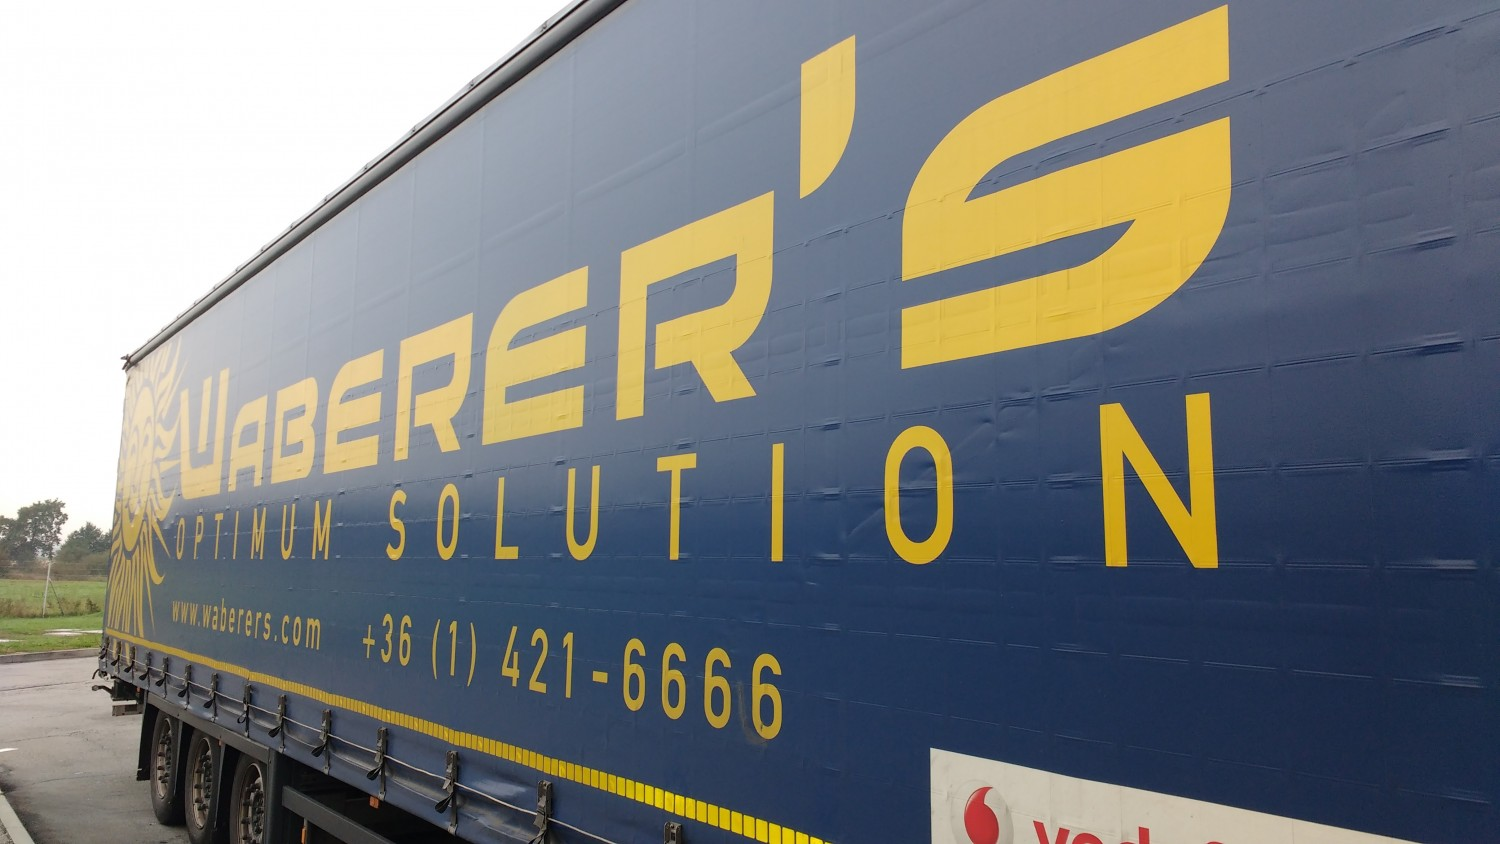 Waberer's Solution truck to Budapest